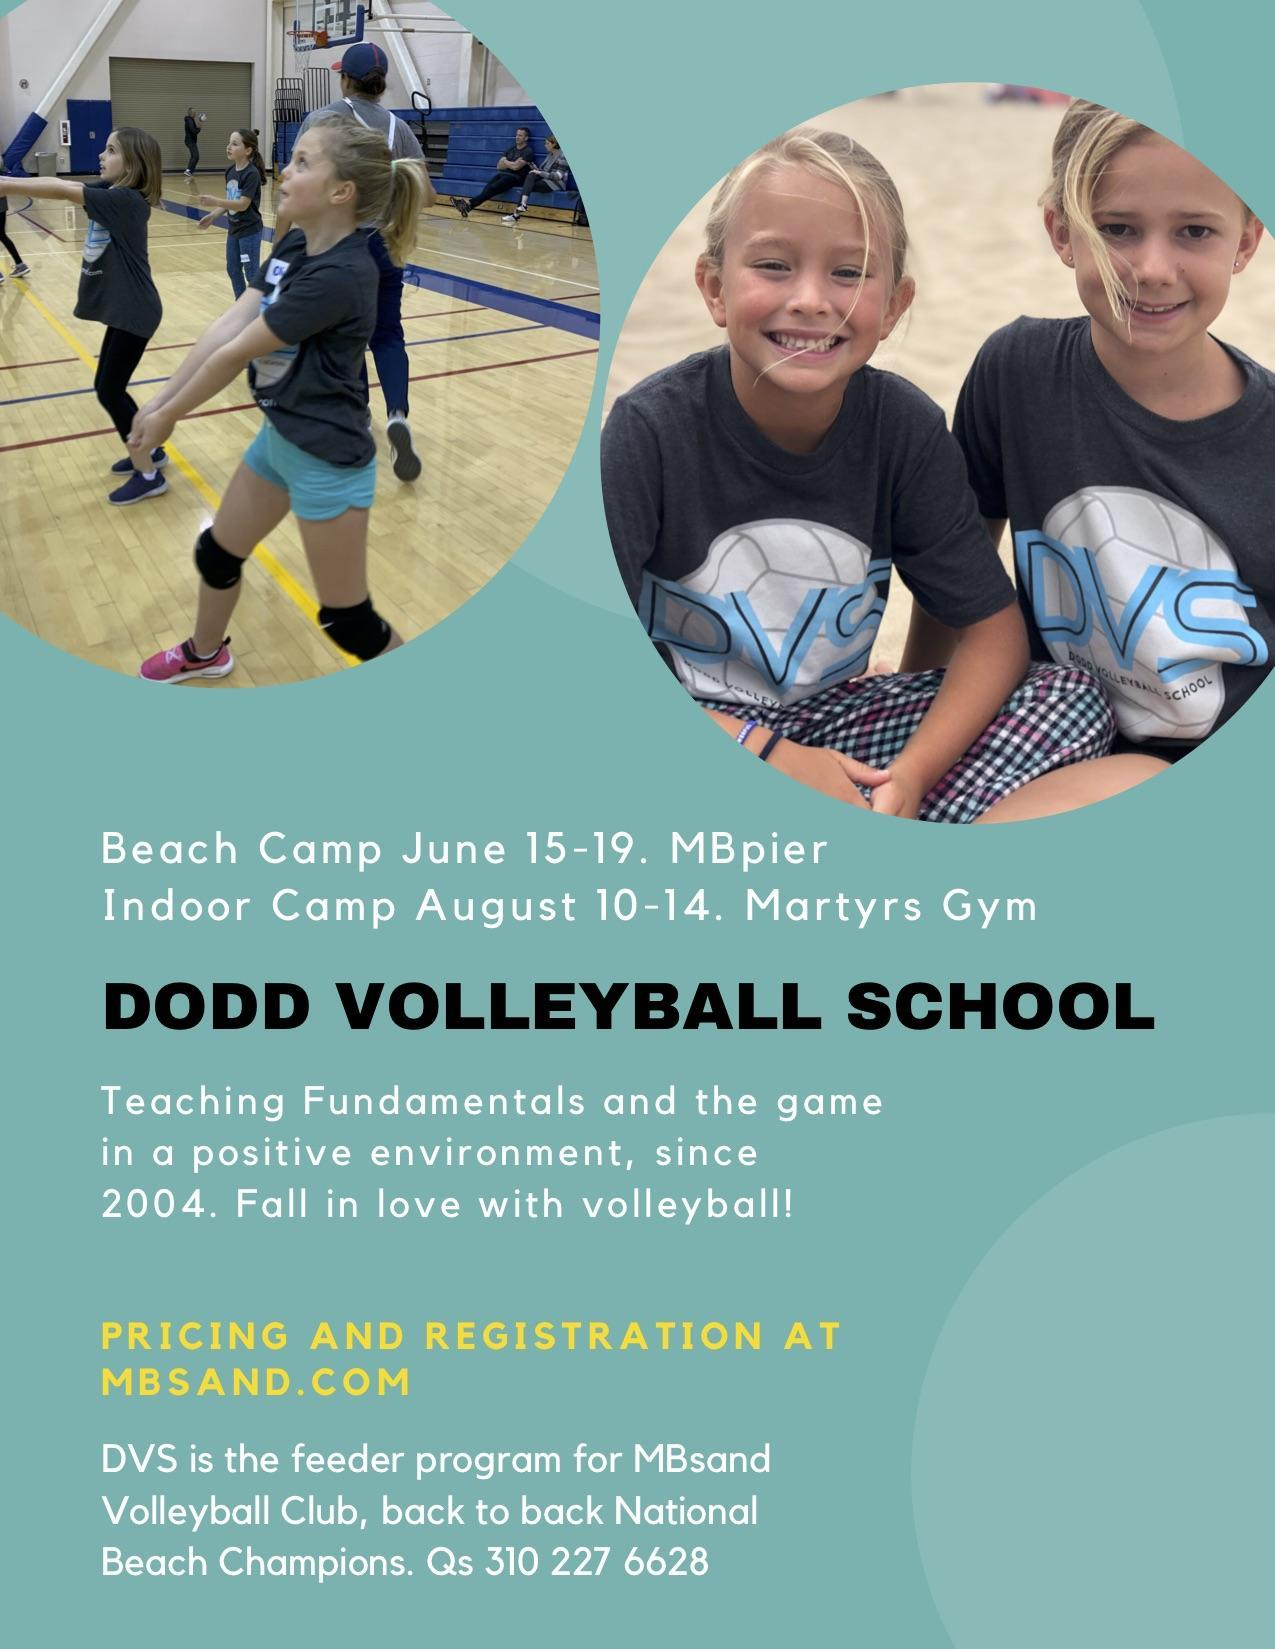 Dodd Volleyball School